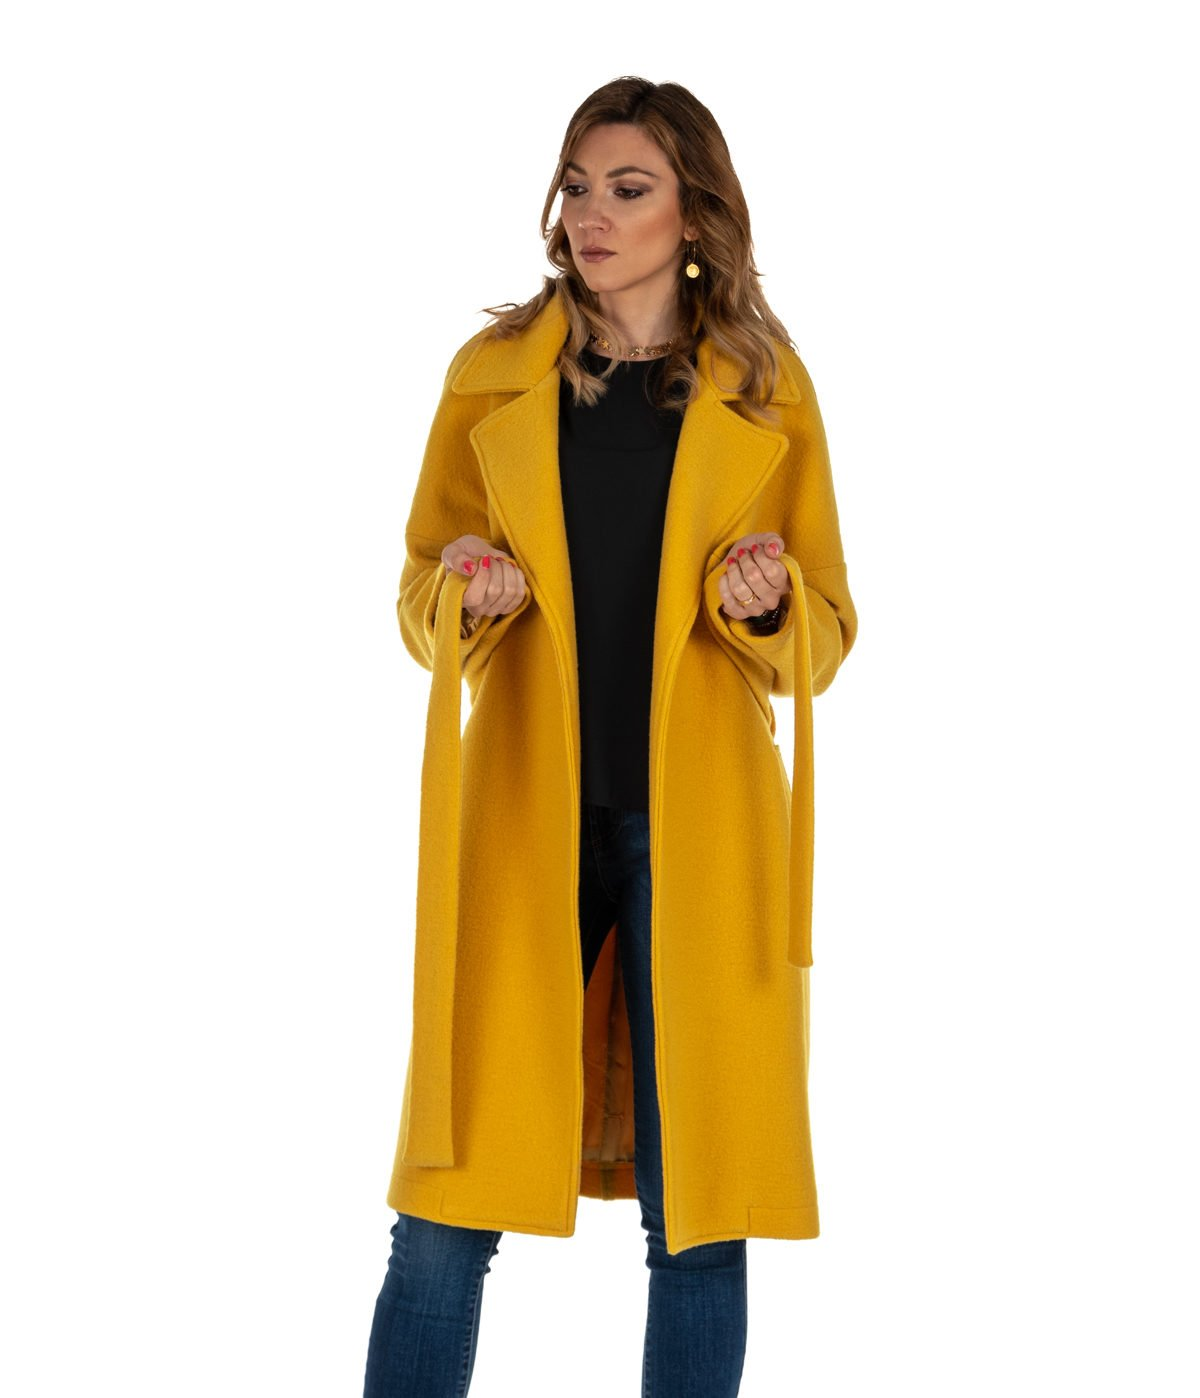 separation shoes c06b7 2ba13 CAPPOTTO DONNA DISTRETTO 12 LA FEMME GIALLO LANA HELLE MADE IN ITALY